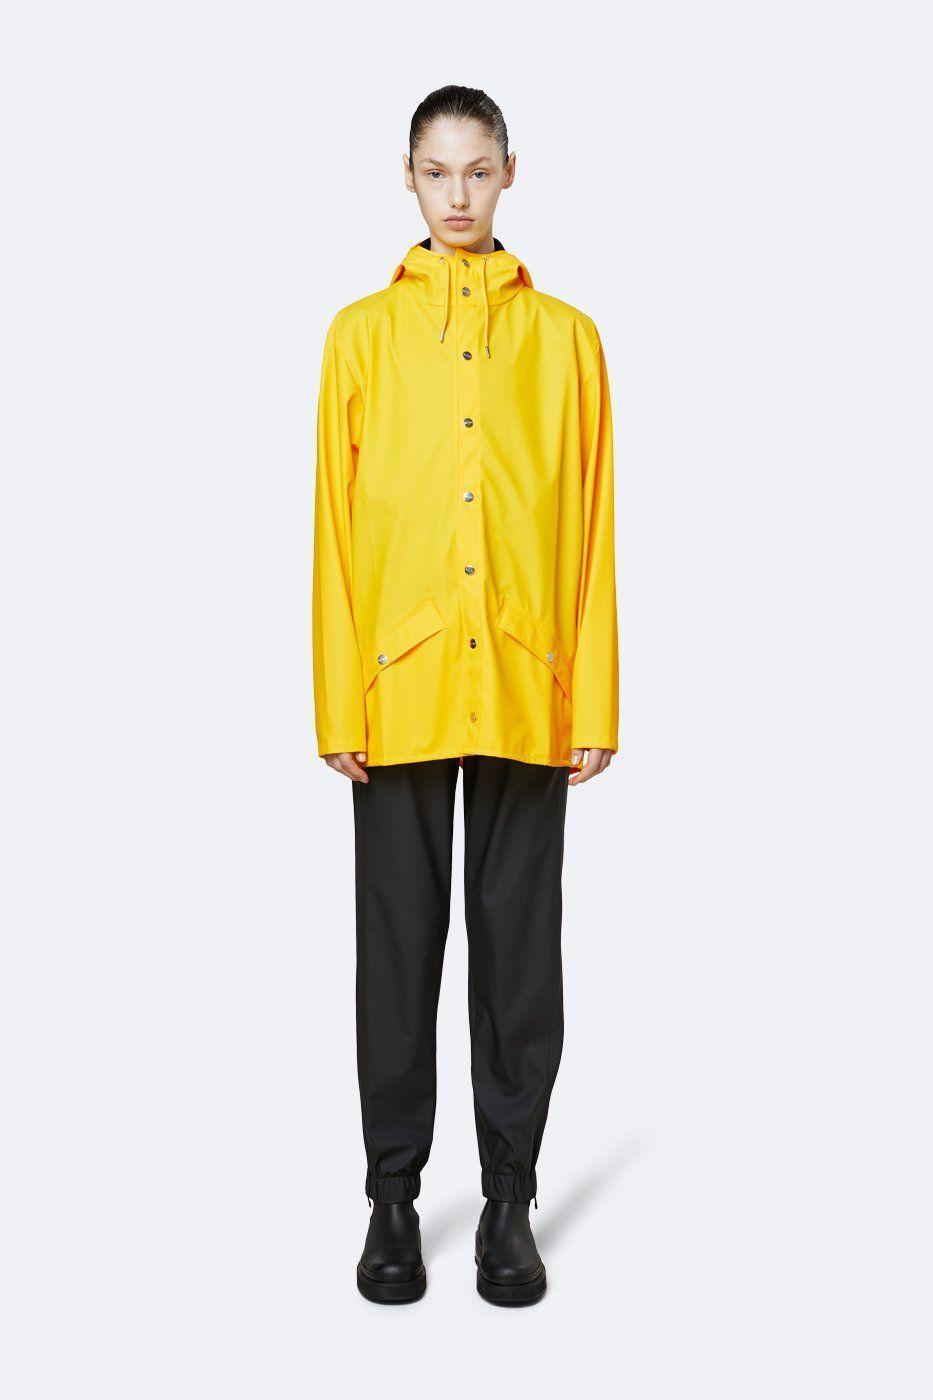 """<p><strong>Rains</strong></p><p>rains.com</p><p><strong>$110.00</strong></p><p><a href=""""https://go.redirectingat.com?id=74968X1596630&url=https%3A%2F%2Fwww.us.rains.com%2Fproducts%2Fjacket-female%3Fvariant%3D1372003598359&sref=https%3A%2F%2Fwww.cosmopolitan.com%2Fstyle-beauty%2Ffashion%2Fg33523619%2Fbest-raincoats%2F"""" rel=""""nofollow noopener"""" target=""""_blank"""" data-ylk=""""slk:Shop Now"""" class=""""link rapid-noclick-resp"""">Shop Now</a></p><p>If you're like me and have always wanted a bright yellow style, opt for one from Rains. It has a casual silhouette with handy pockets and a high neck in case it's really coming down hard. </p>"""